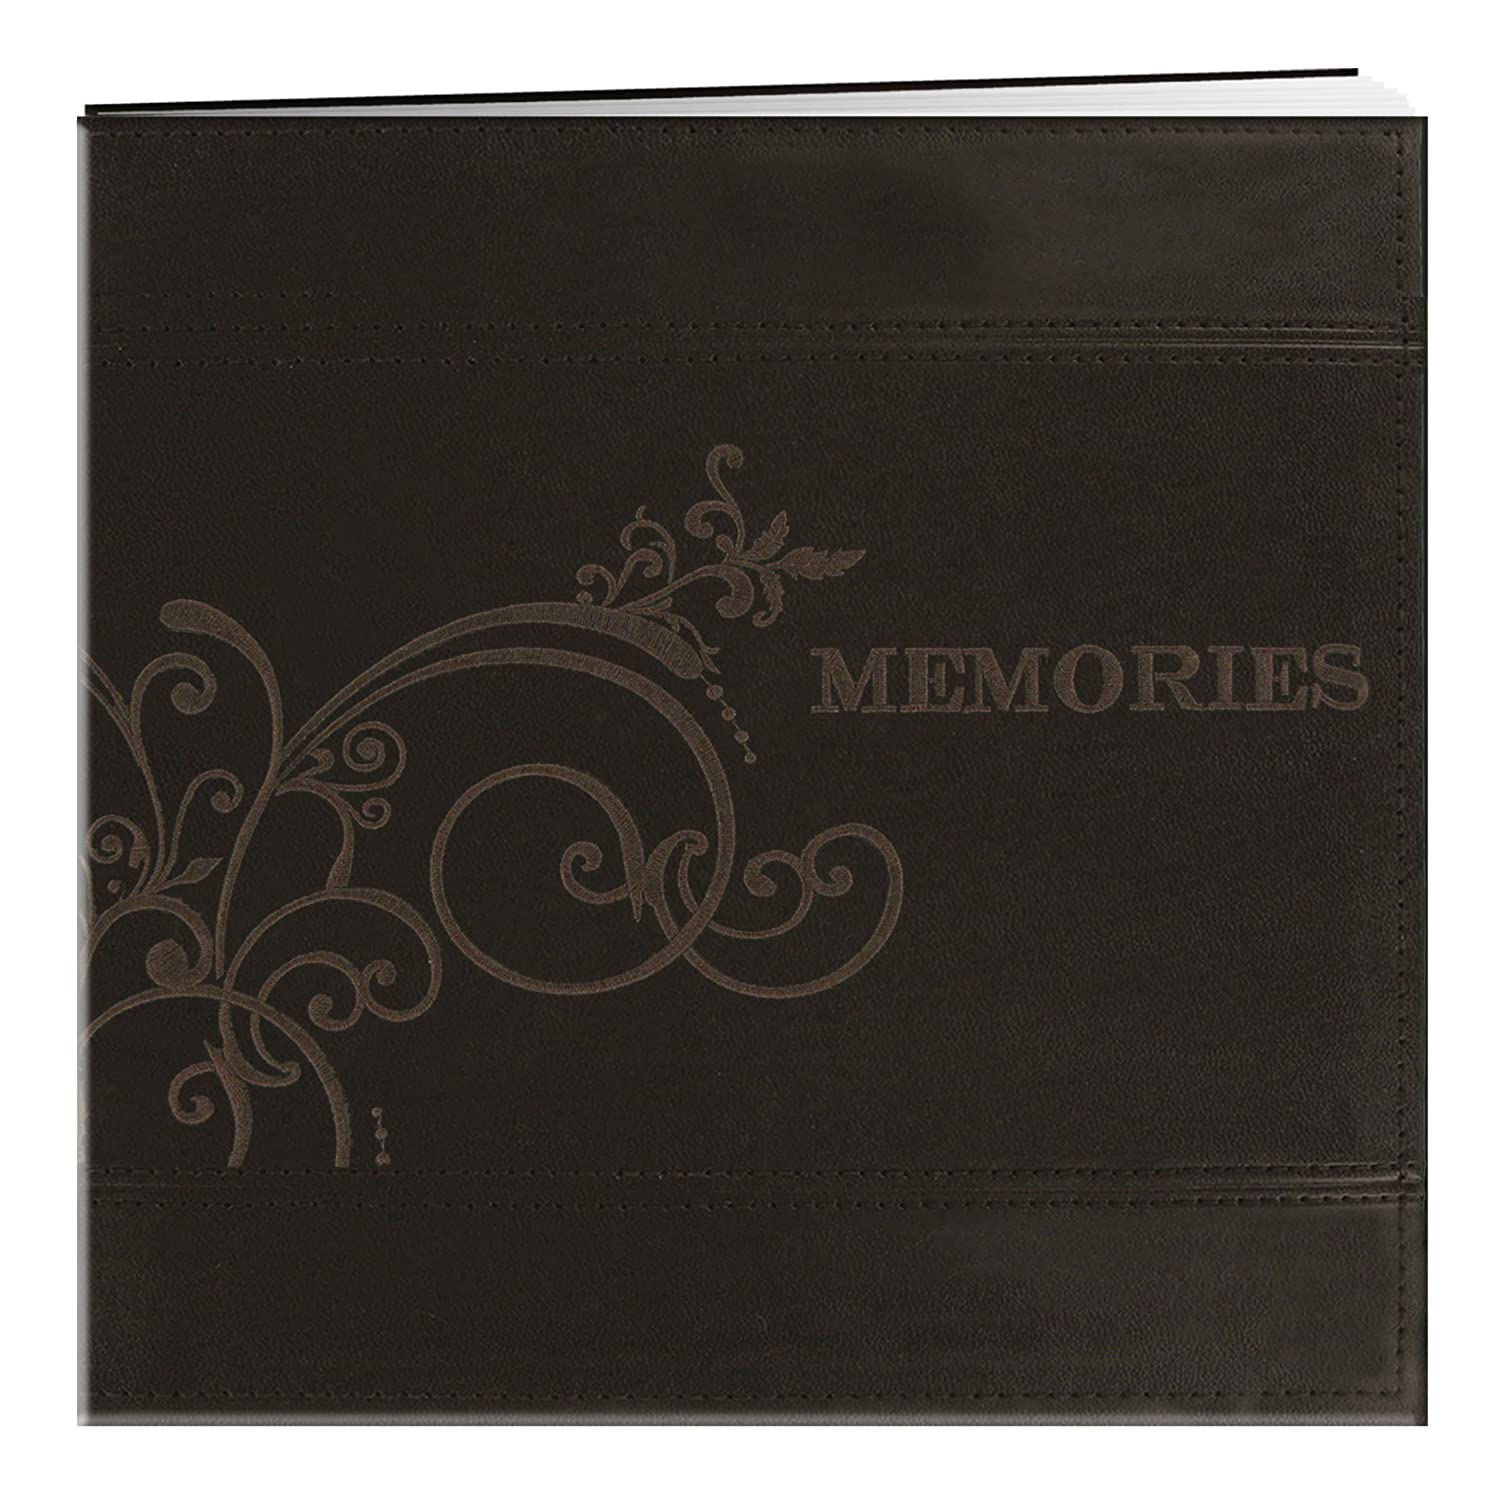 Pioneer Photo Albums 12 x 12-Inch Postbound Embroidered Scroll andWedding Sewn Leatherette Cover Memory Book, Ivory MB-10EMPW